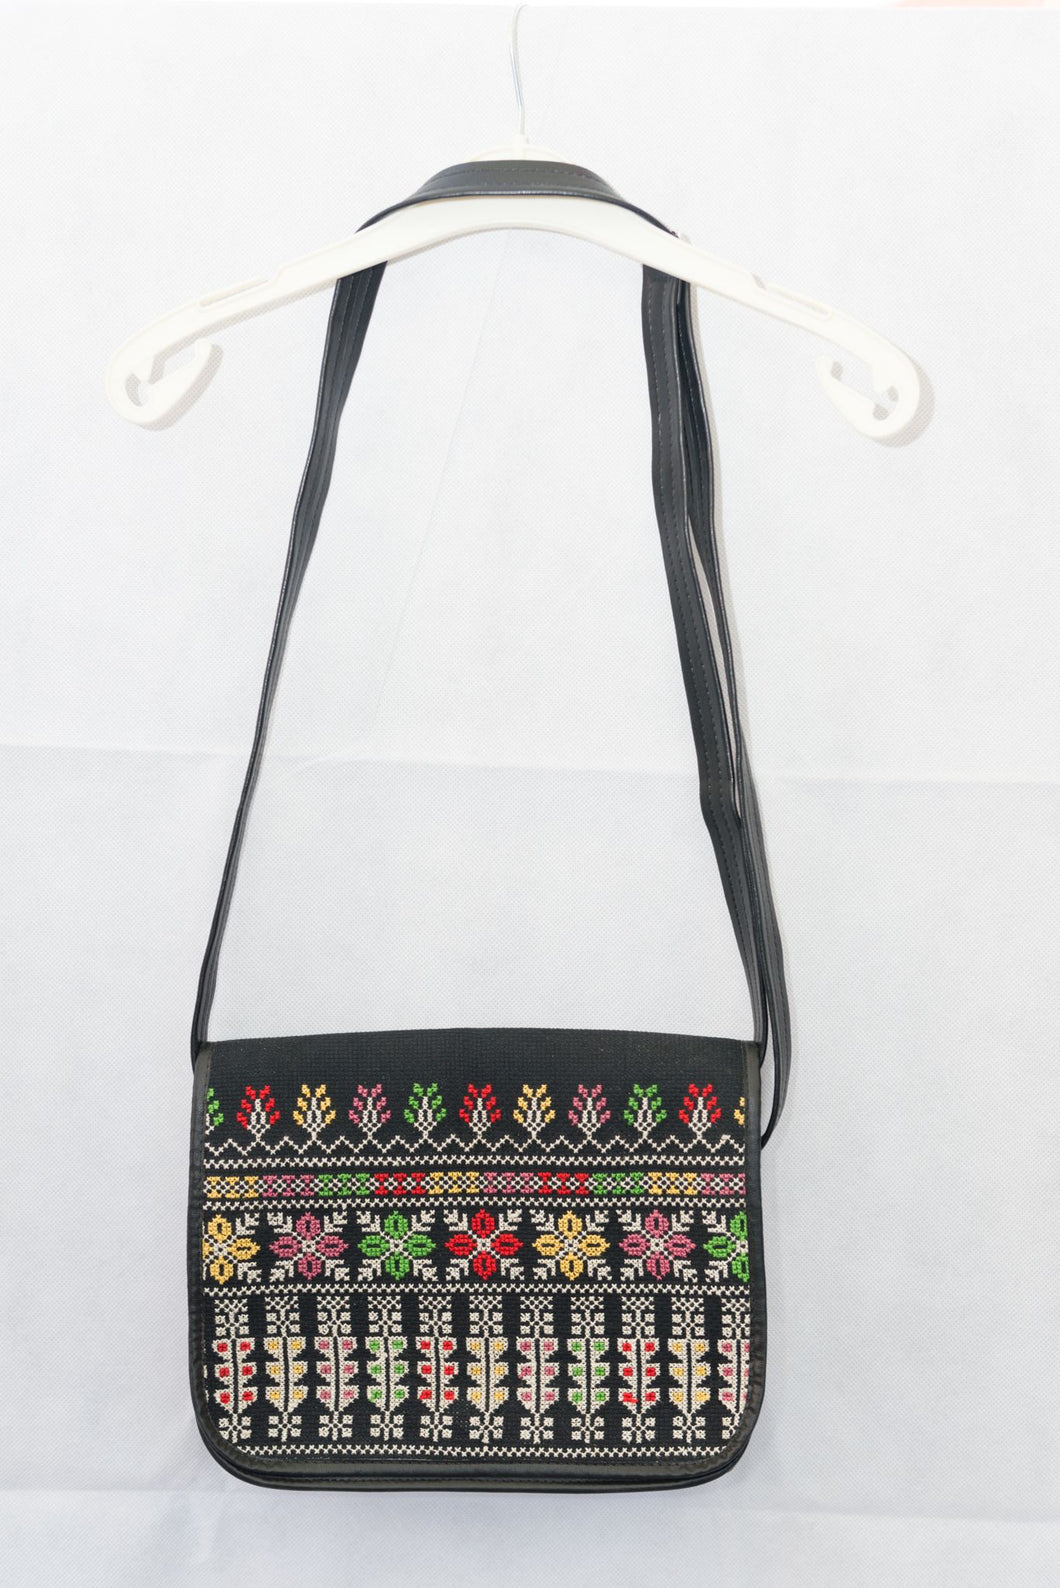 Hand embroidered black handbag with colorful embroidery